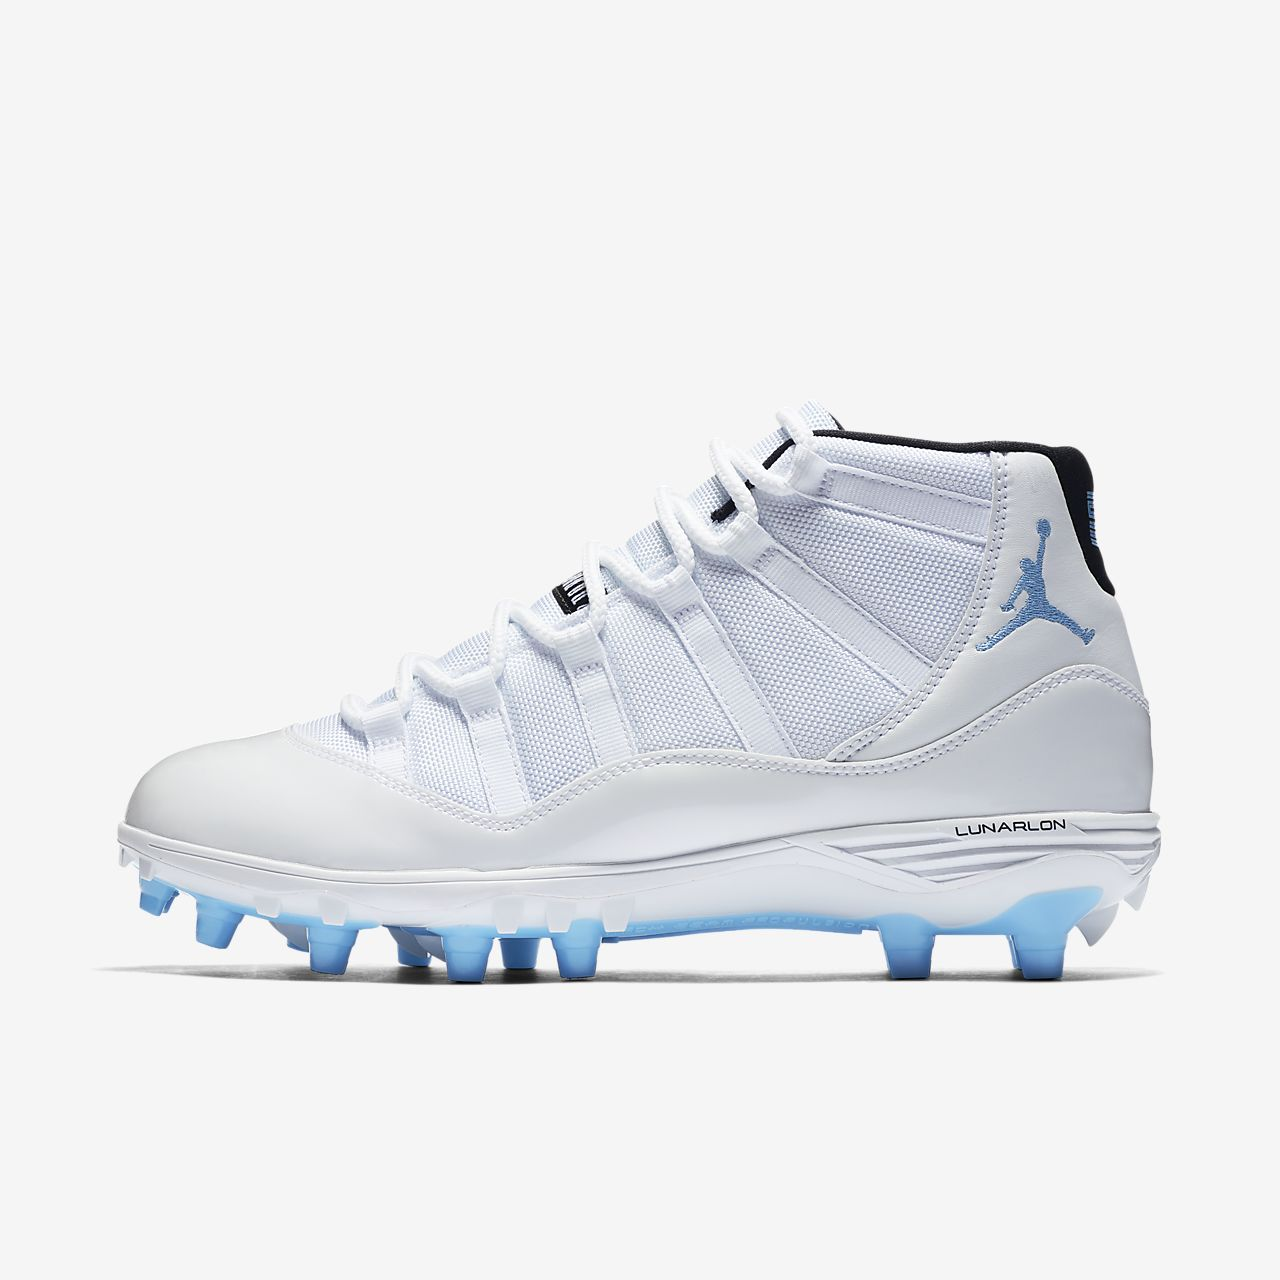 3ba3ae391810 Jordan XI Retro TD Men's Football Cleat. Nike.com